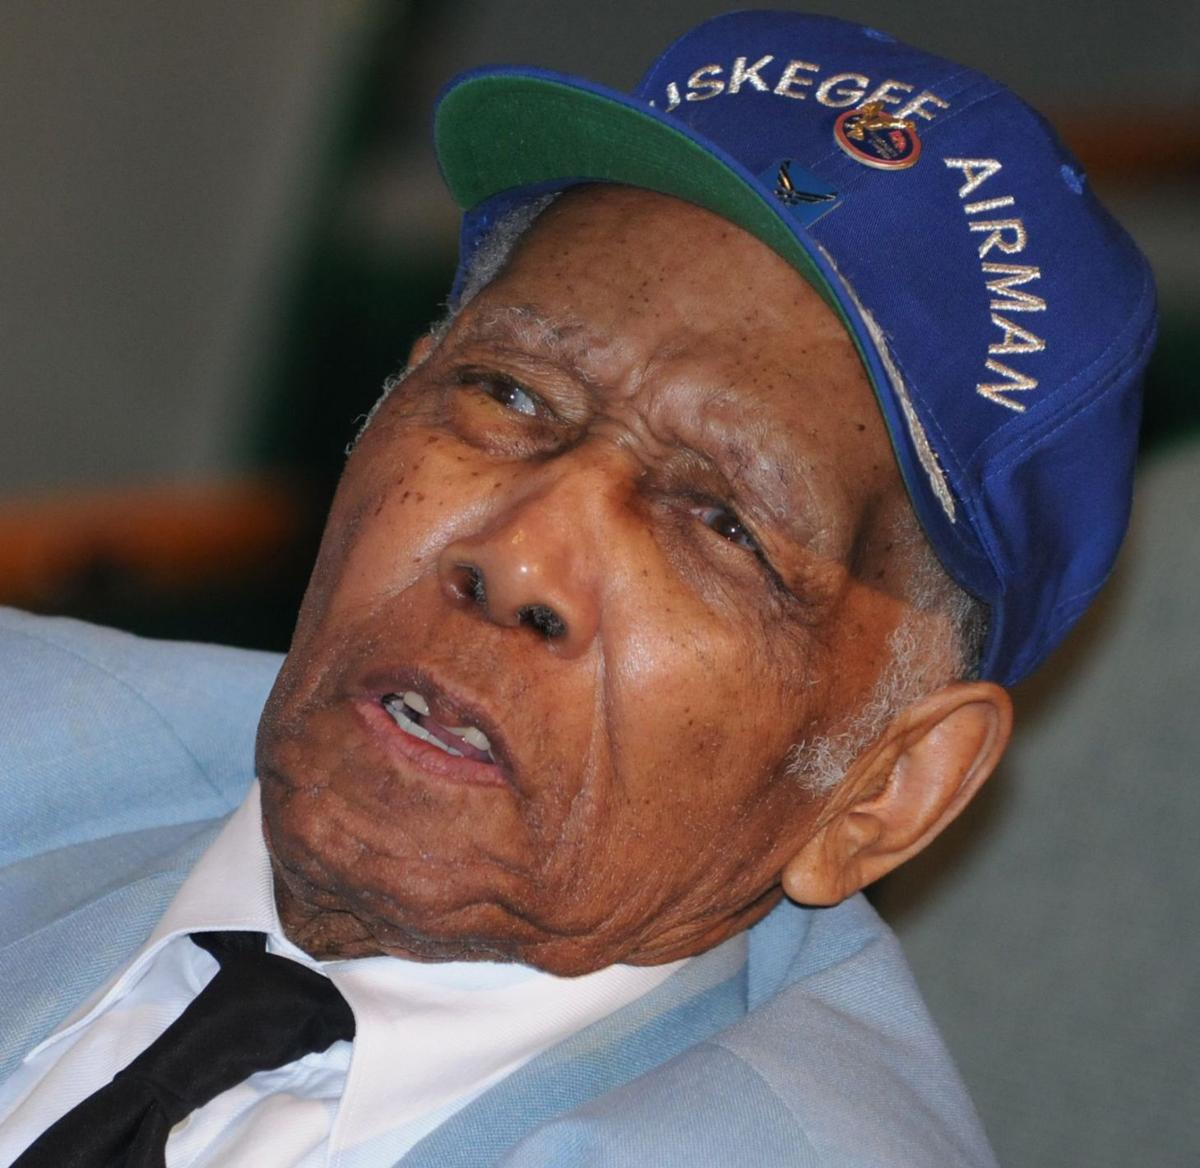 History told through Tuskegee Airmen